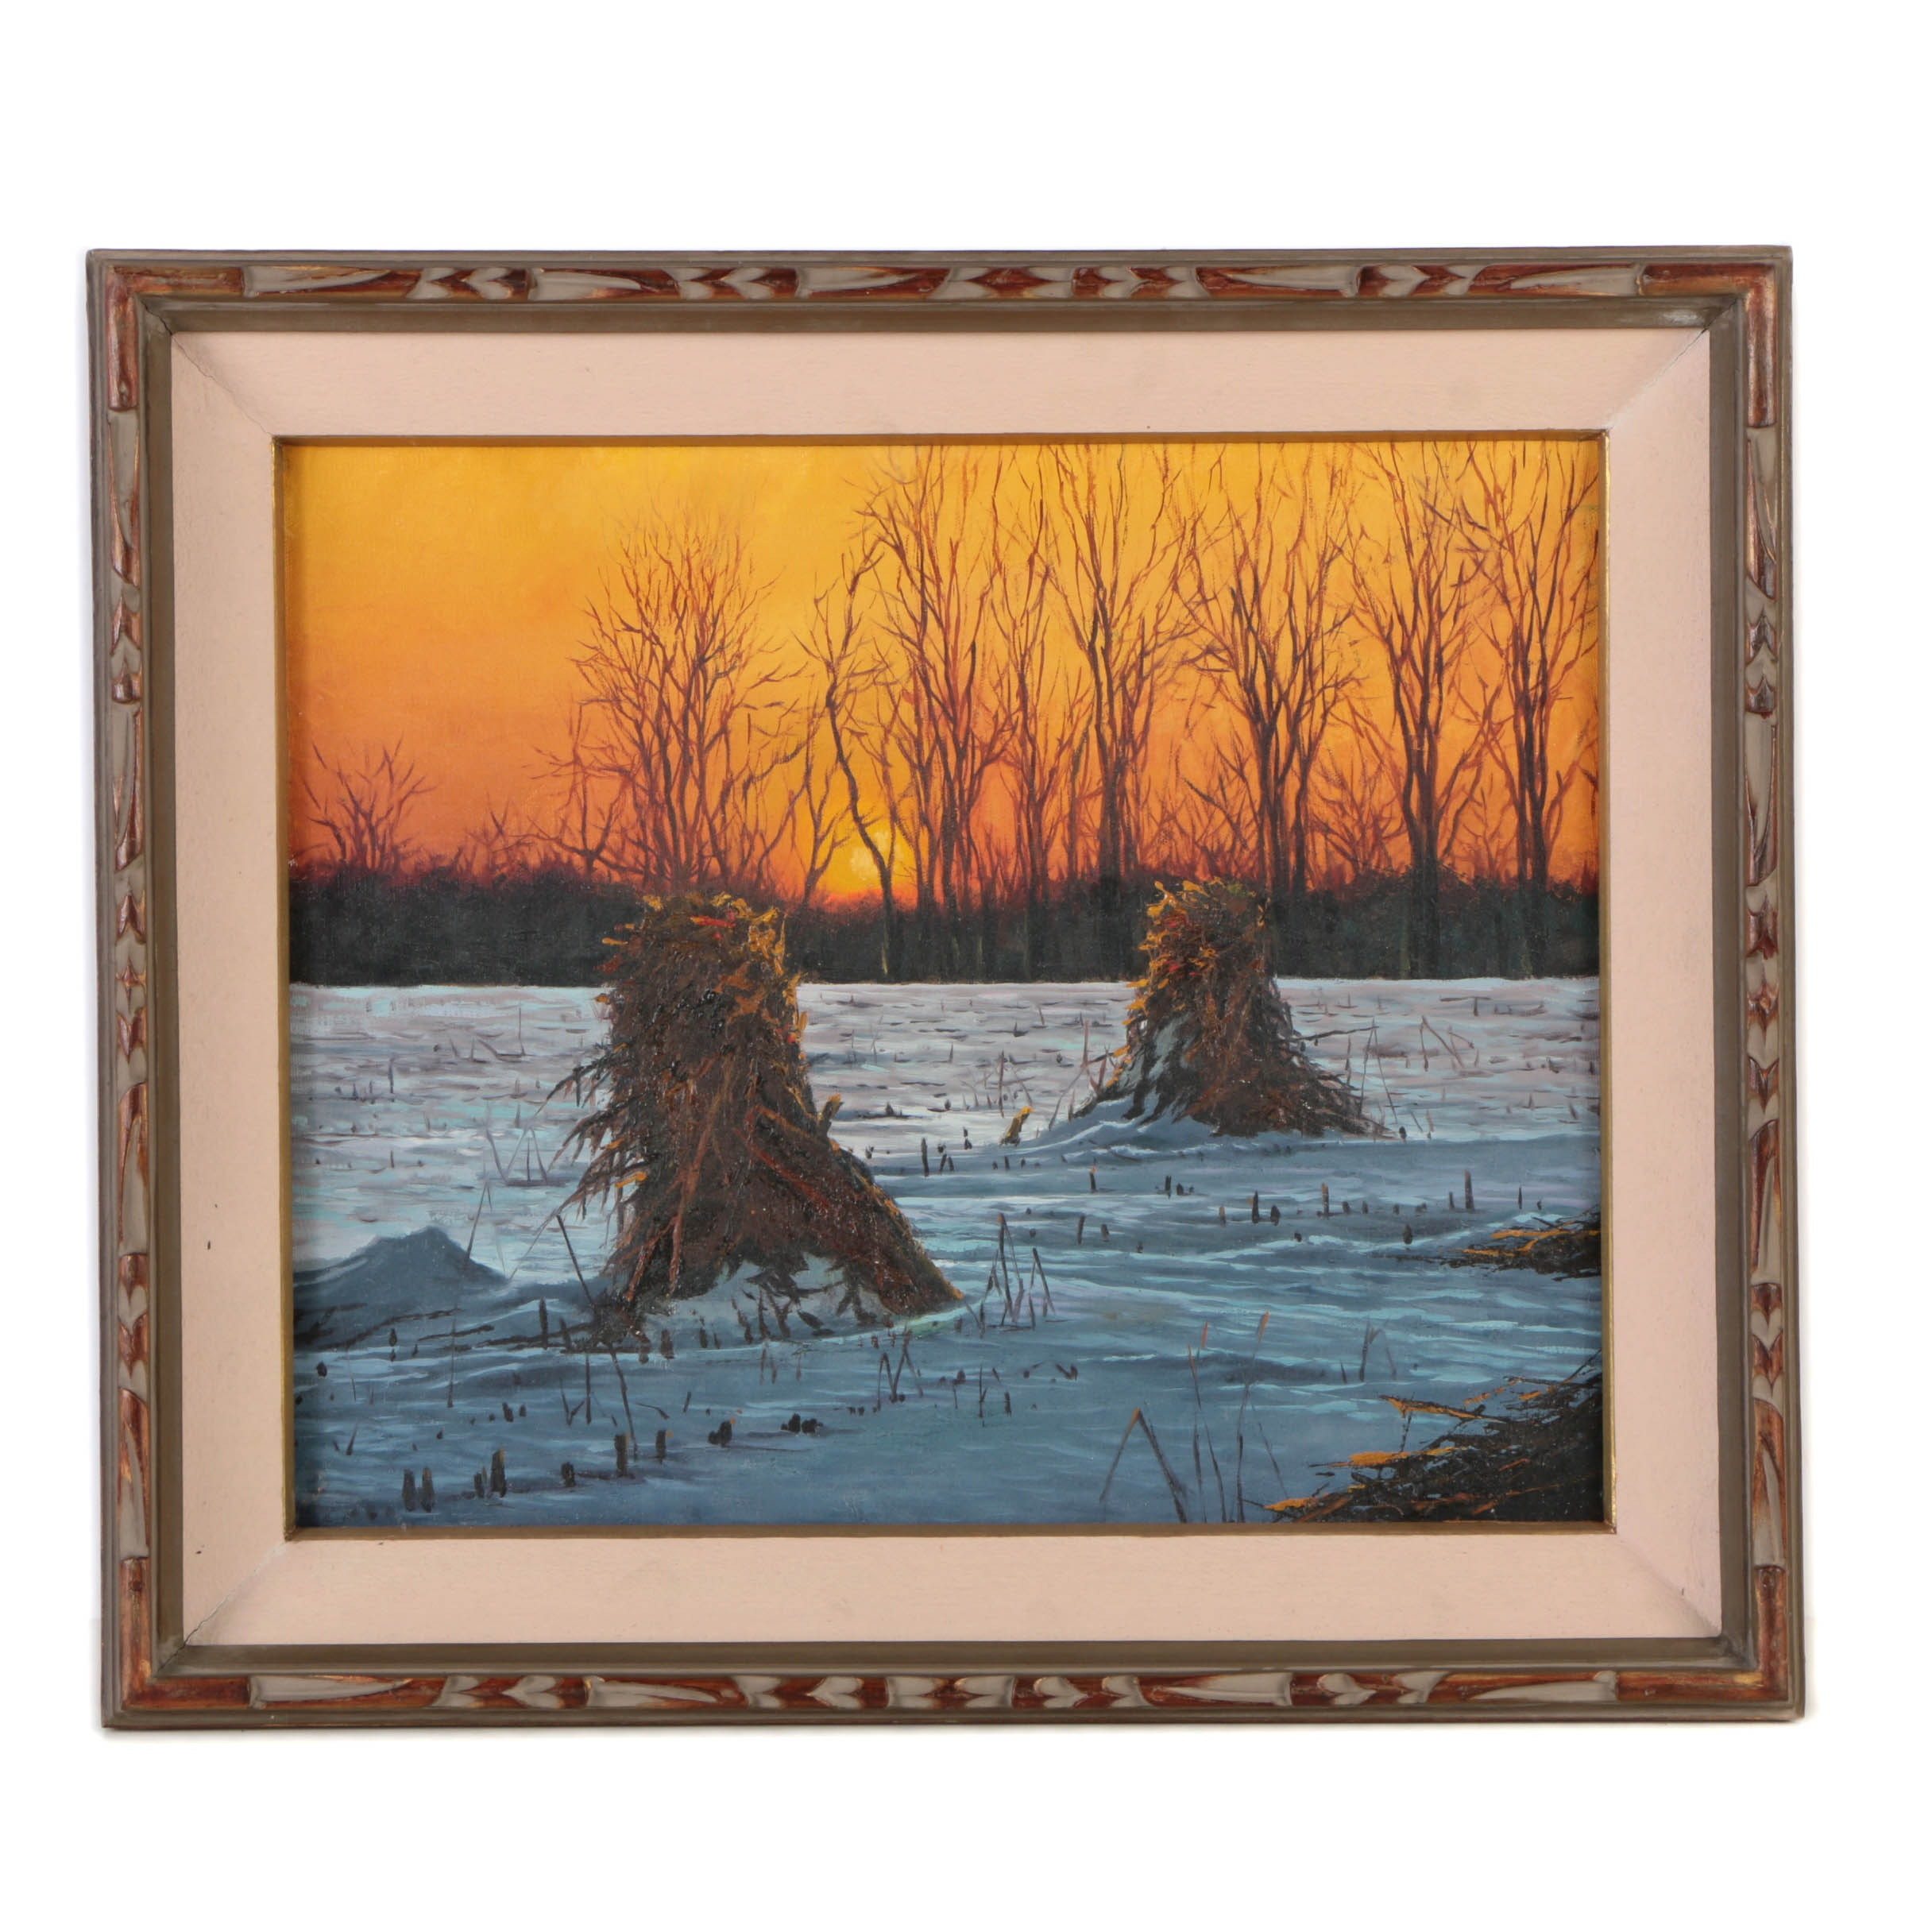 Acrylic Painting of a Wintry Landscape.